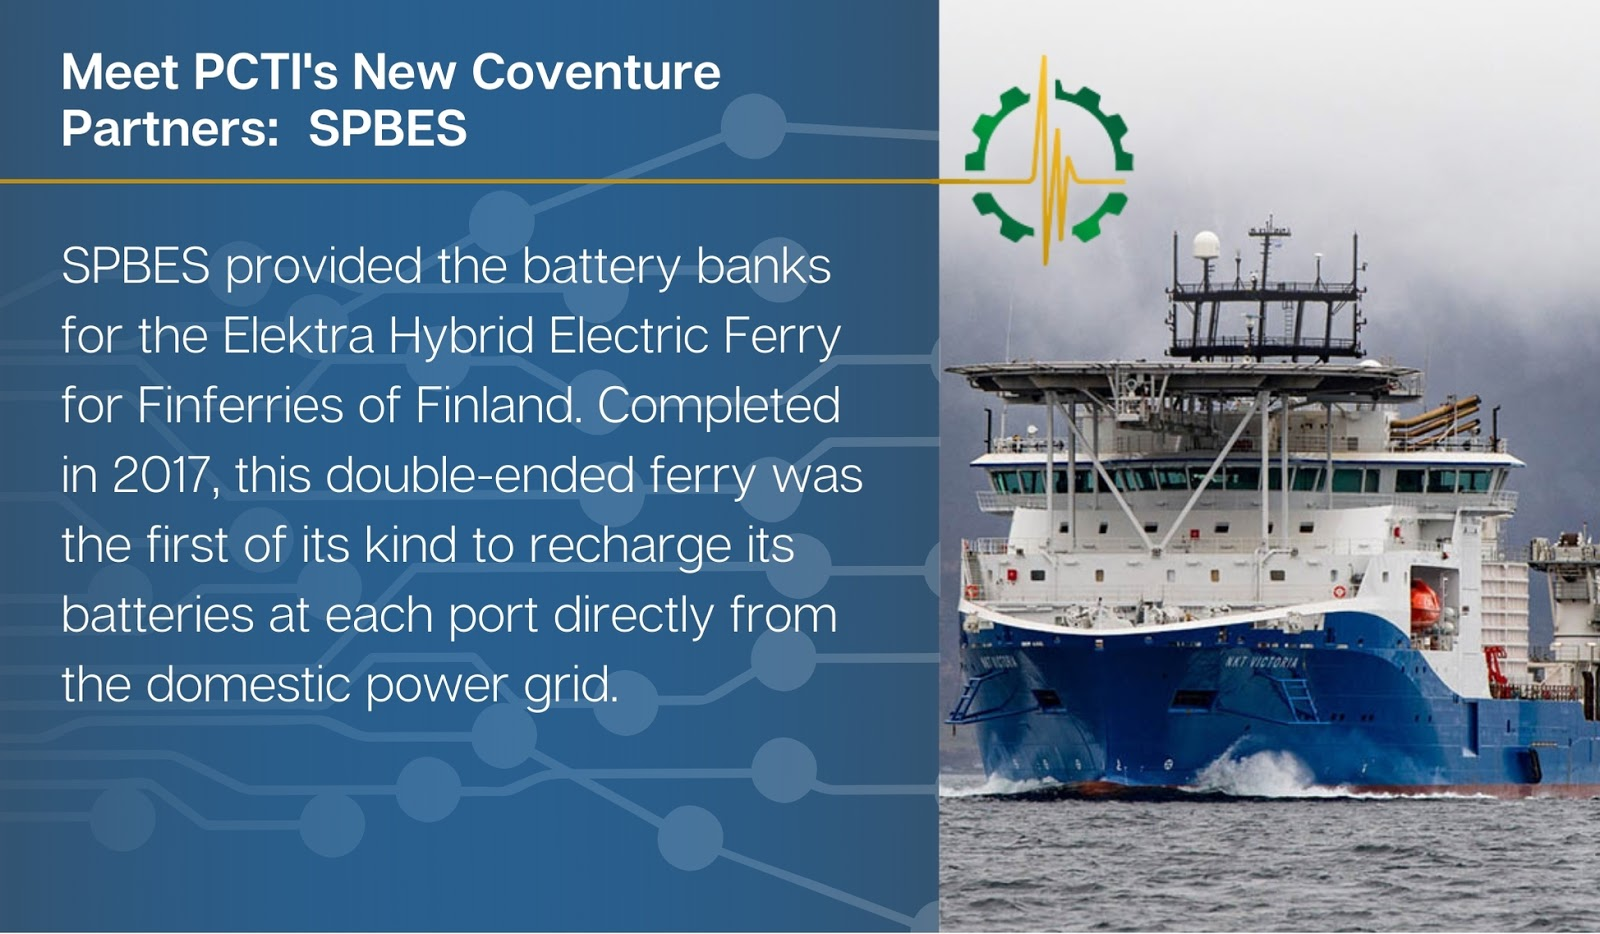 Conventure Partner: SPBES Battery Banks